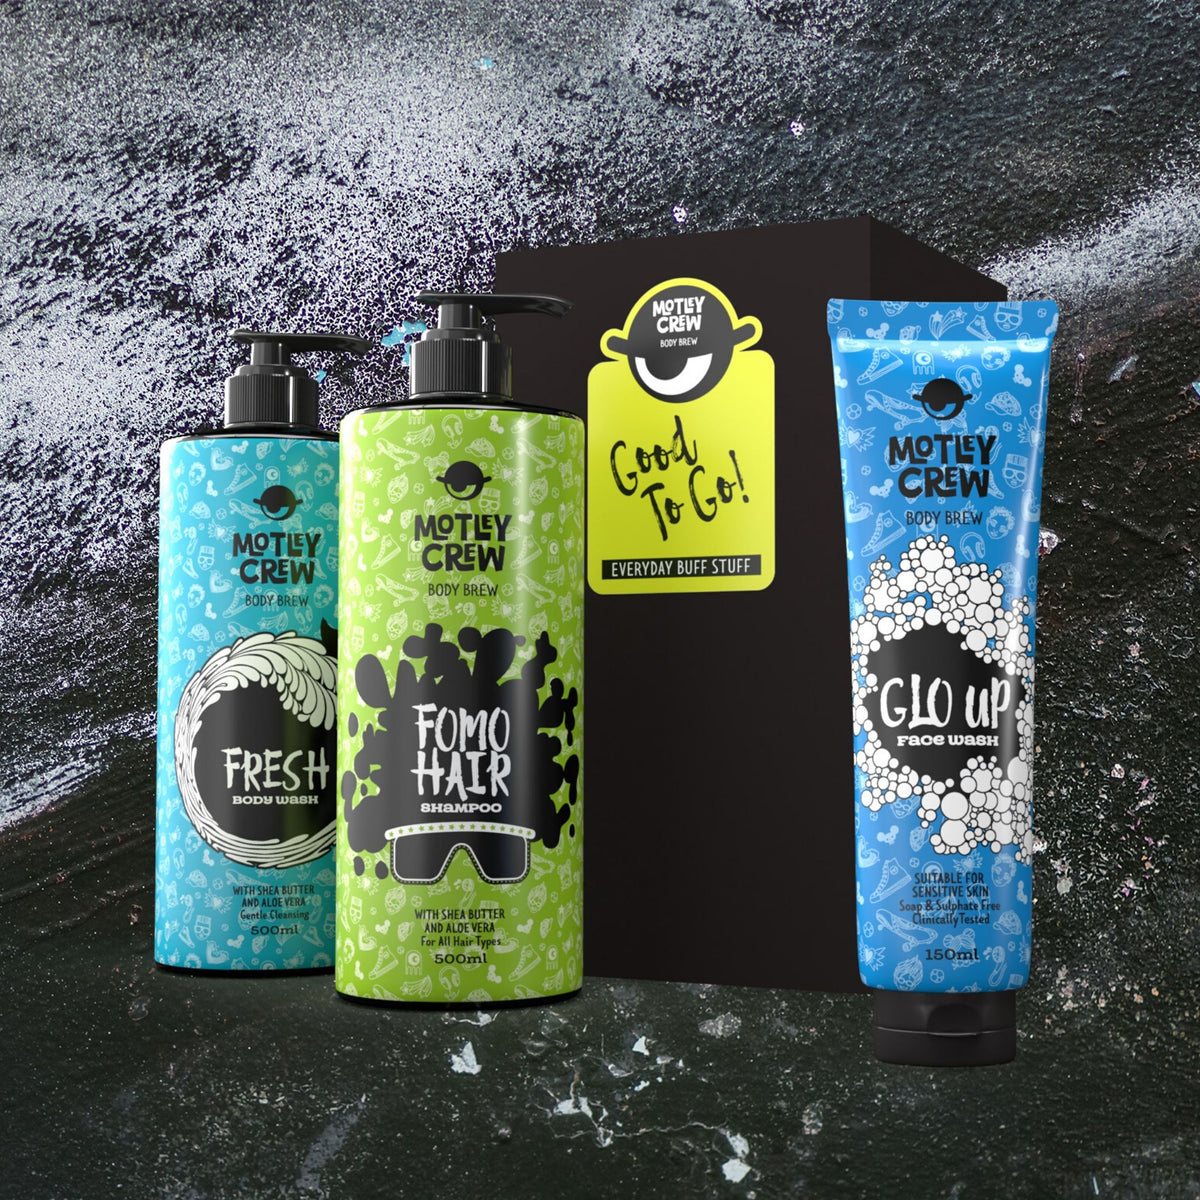 Motley Crew Toiletries for Tweens - Gift Boxes